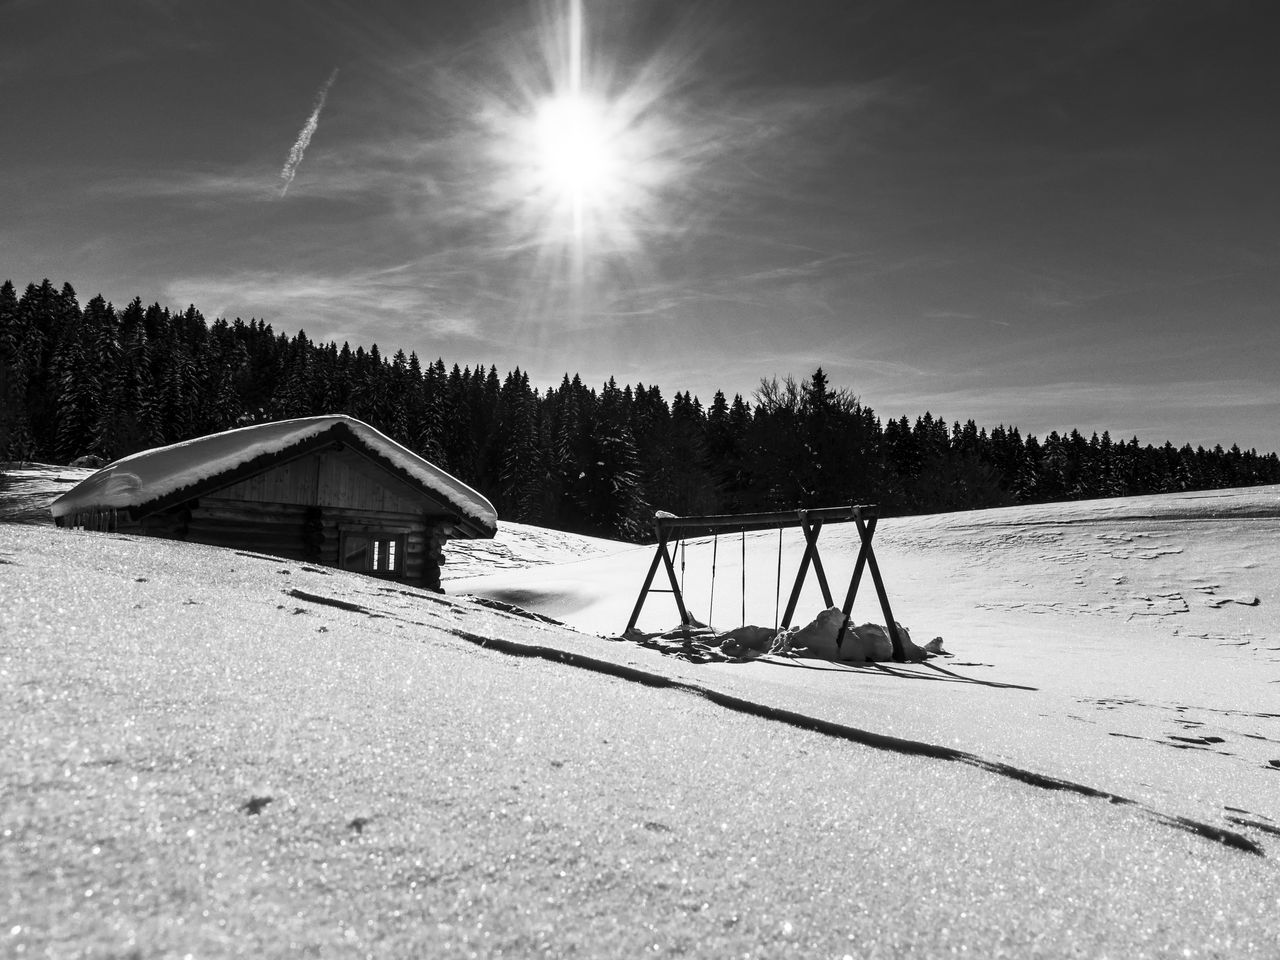 Beauty In Nature Blackandwhite Blackandwhite Photography Cabin Chalet Cold Temperature Landscape Landscape_Collection Nature Nature_collection Neighborhood Map No People Outdoors Scenics Sky The Great Outdoors - 2017 EyeEm Awards Sun Sunbeam Sunlight Swing Tranquil Scene Tranquility Tree Winter